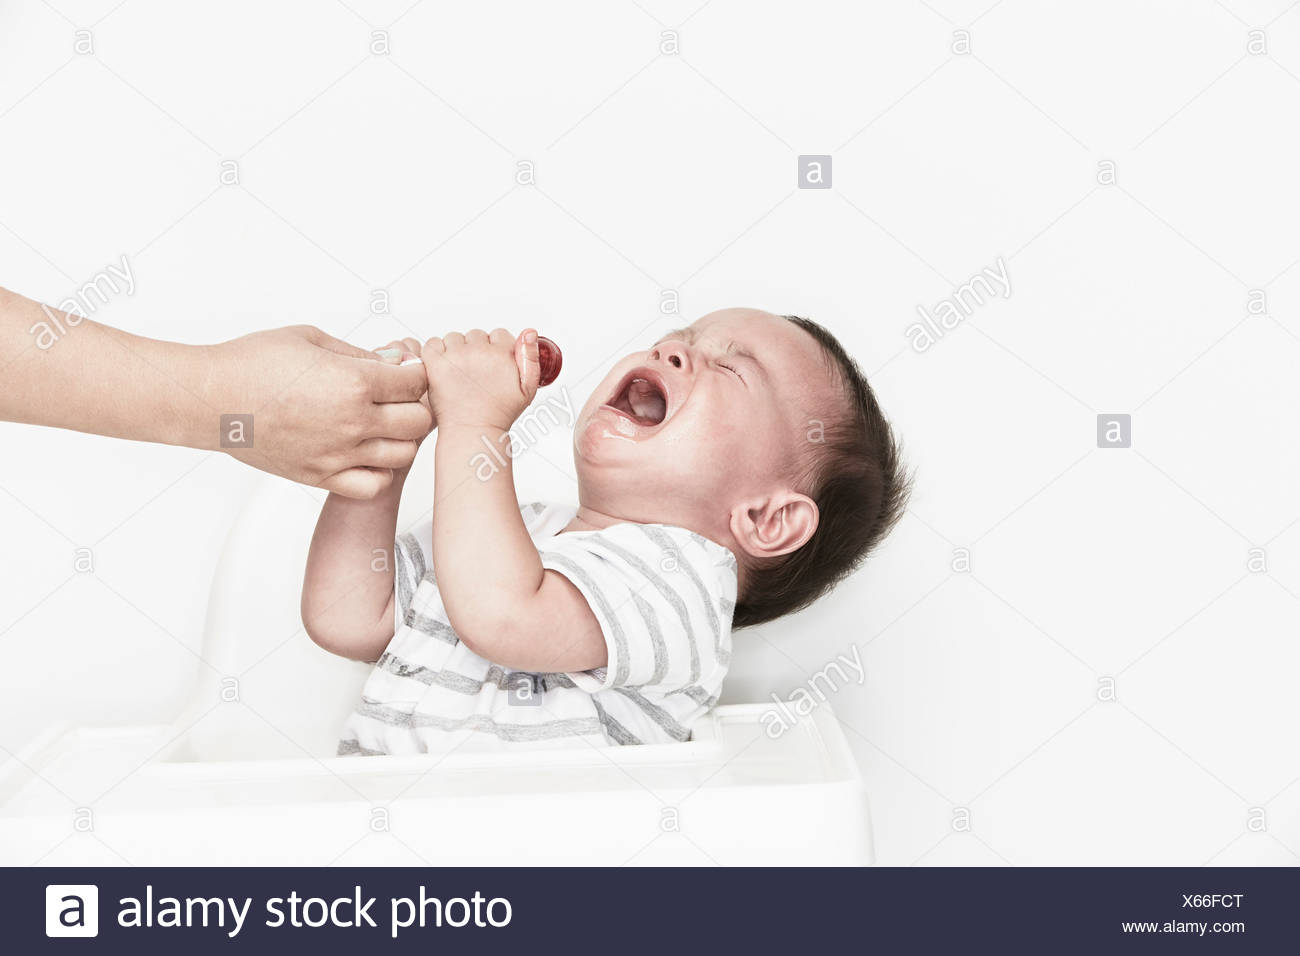 Hand taking lollipop from crying baby - Stock Image